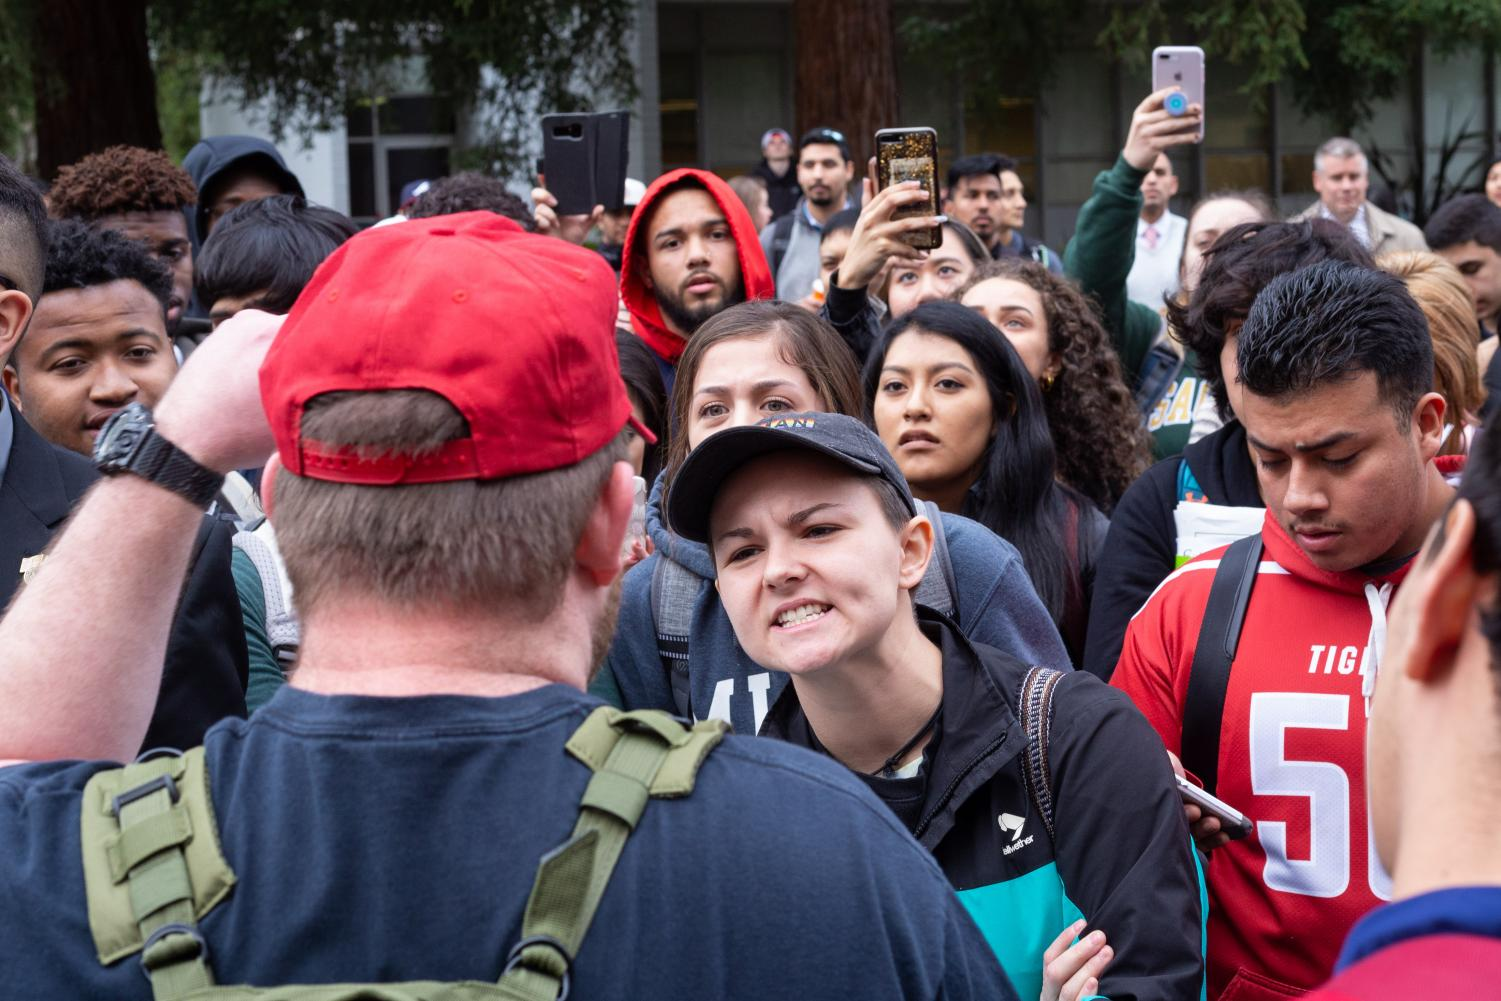 Sac+State+student+Lauren+Pulido+argues+with+Philip+Olding+about+whether+or+not+President+Donald+Trump+is+racist+in+the+Library+Quad+Thursday.+A+fight+broke+out+at+Sac+State+after+a+group+of+men+wearing+Make+America+Great+Again+hats+with+a+Blue+Lives+Matter+flag+accused+The+State+Hornet+of+inciting+violence+in+its+latest+print+issue.